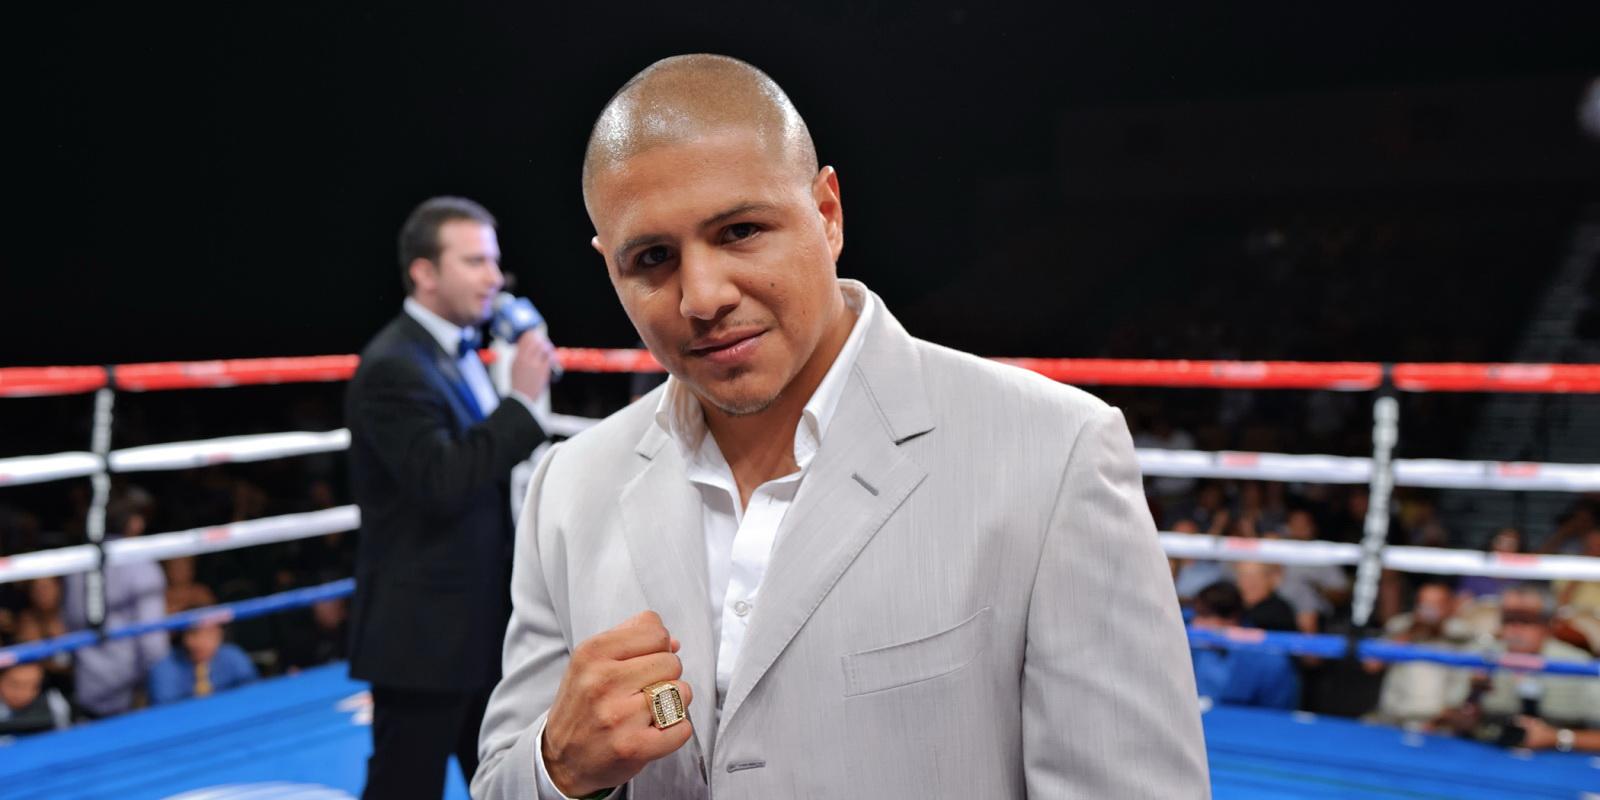 141853772402 further Ricky Hatton   Worth together with Shaquille Oneal Hangs Out With 74 Tall 12 Year Old additionally Tony Parker Recalls Painful Divorce With Eva Longoria in addition o Tratar El Cabello Con Mechas. on oscar de la hoya net worth 2015